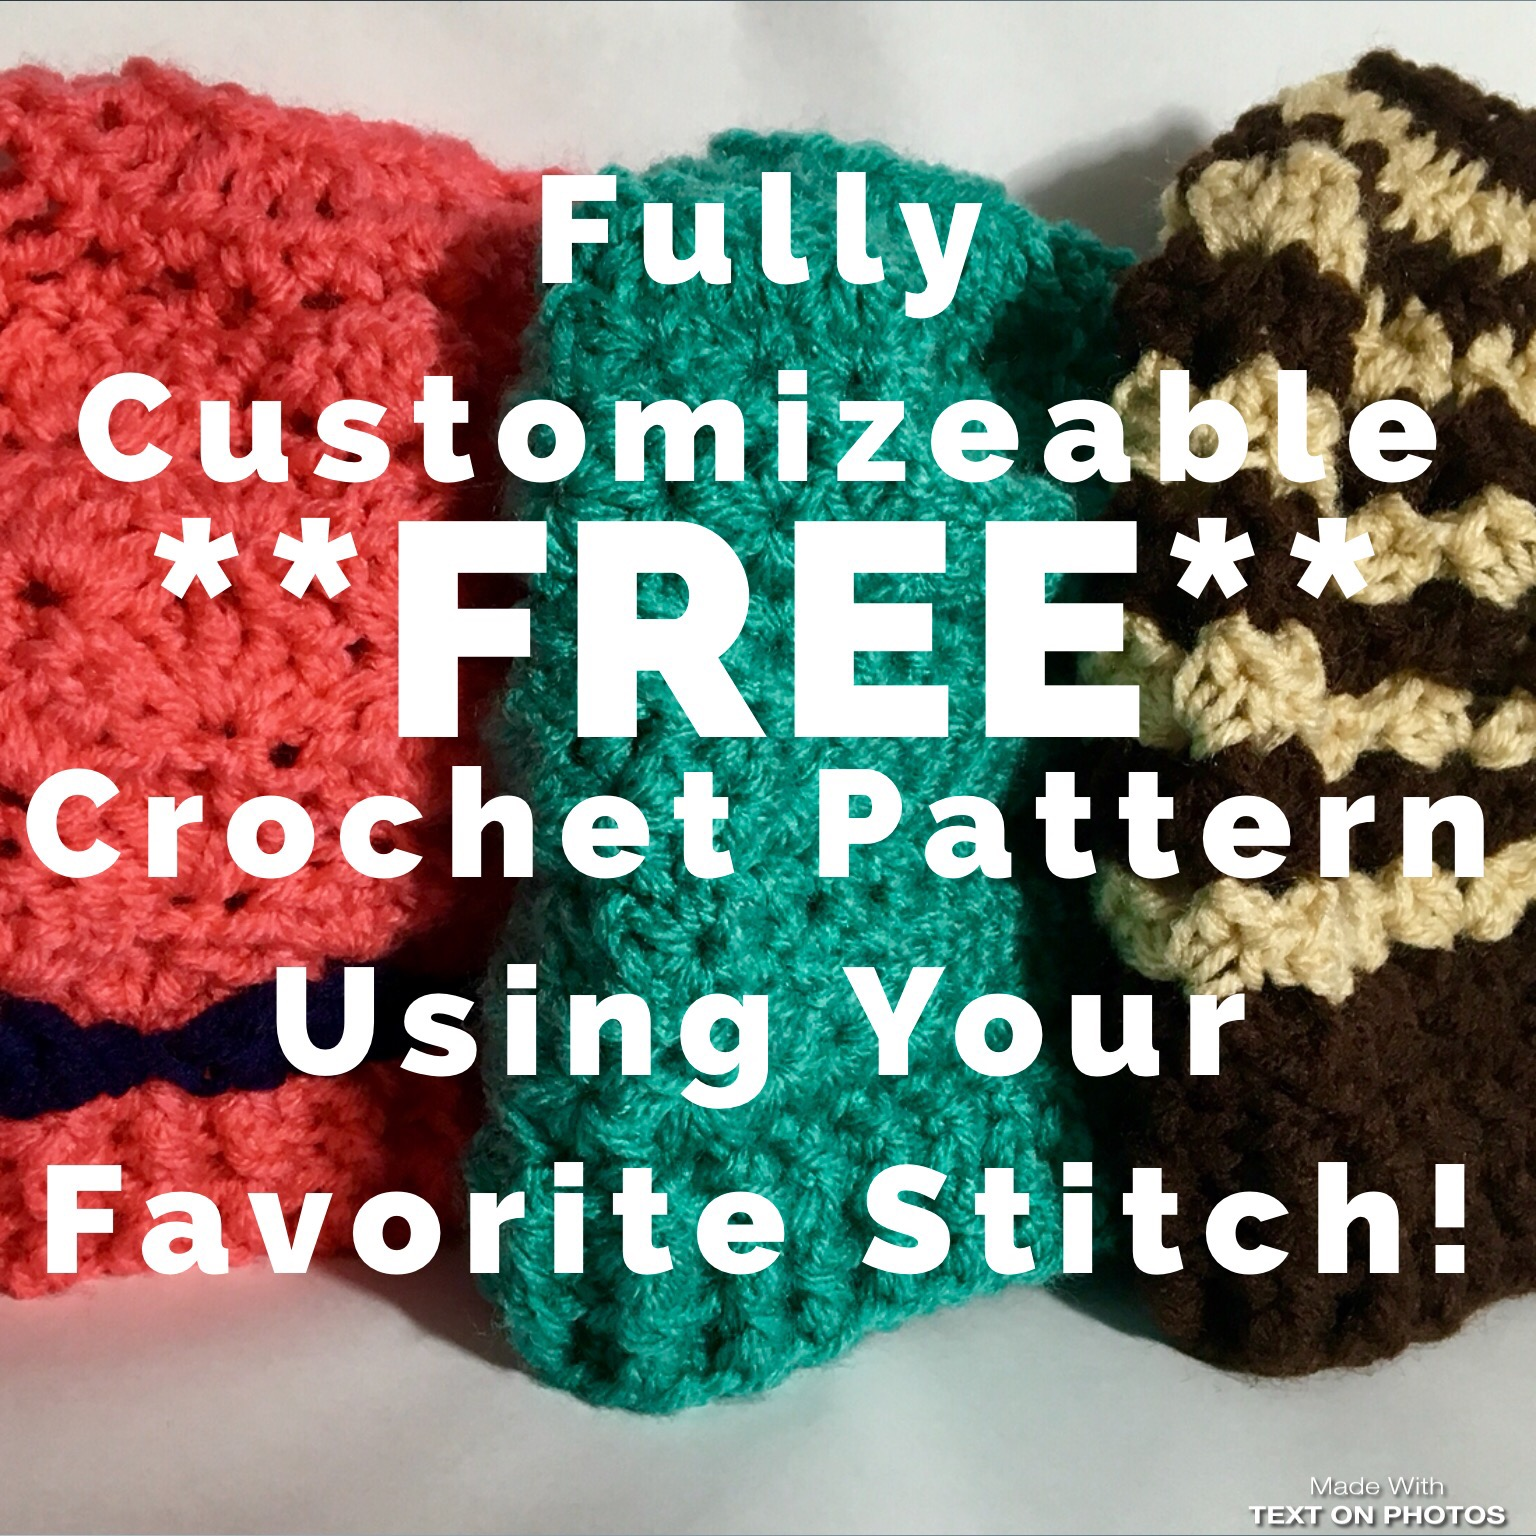 Free Crochet Pattern For A Messy Bun Hat Using Your Favorite Crochet